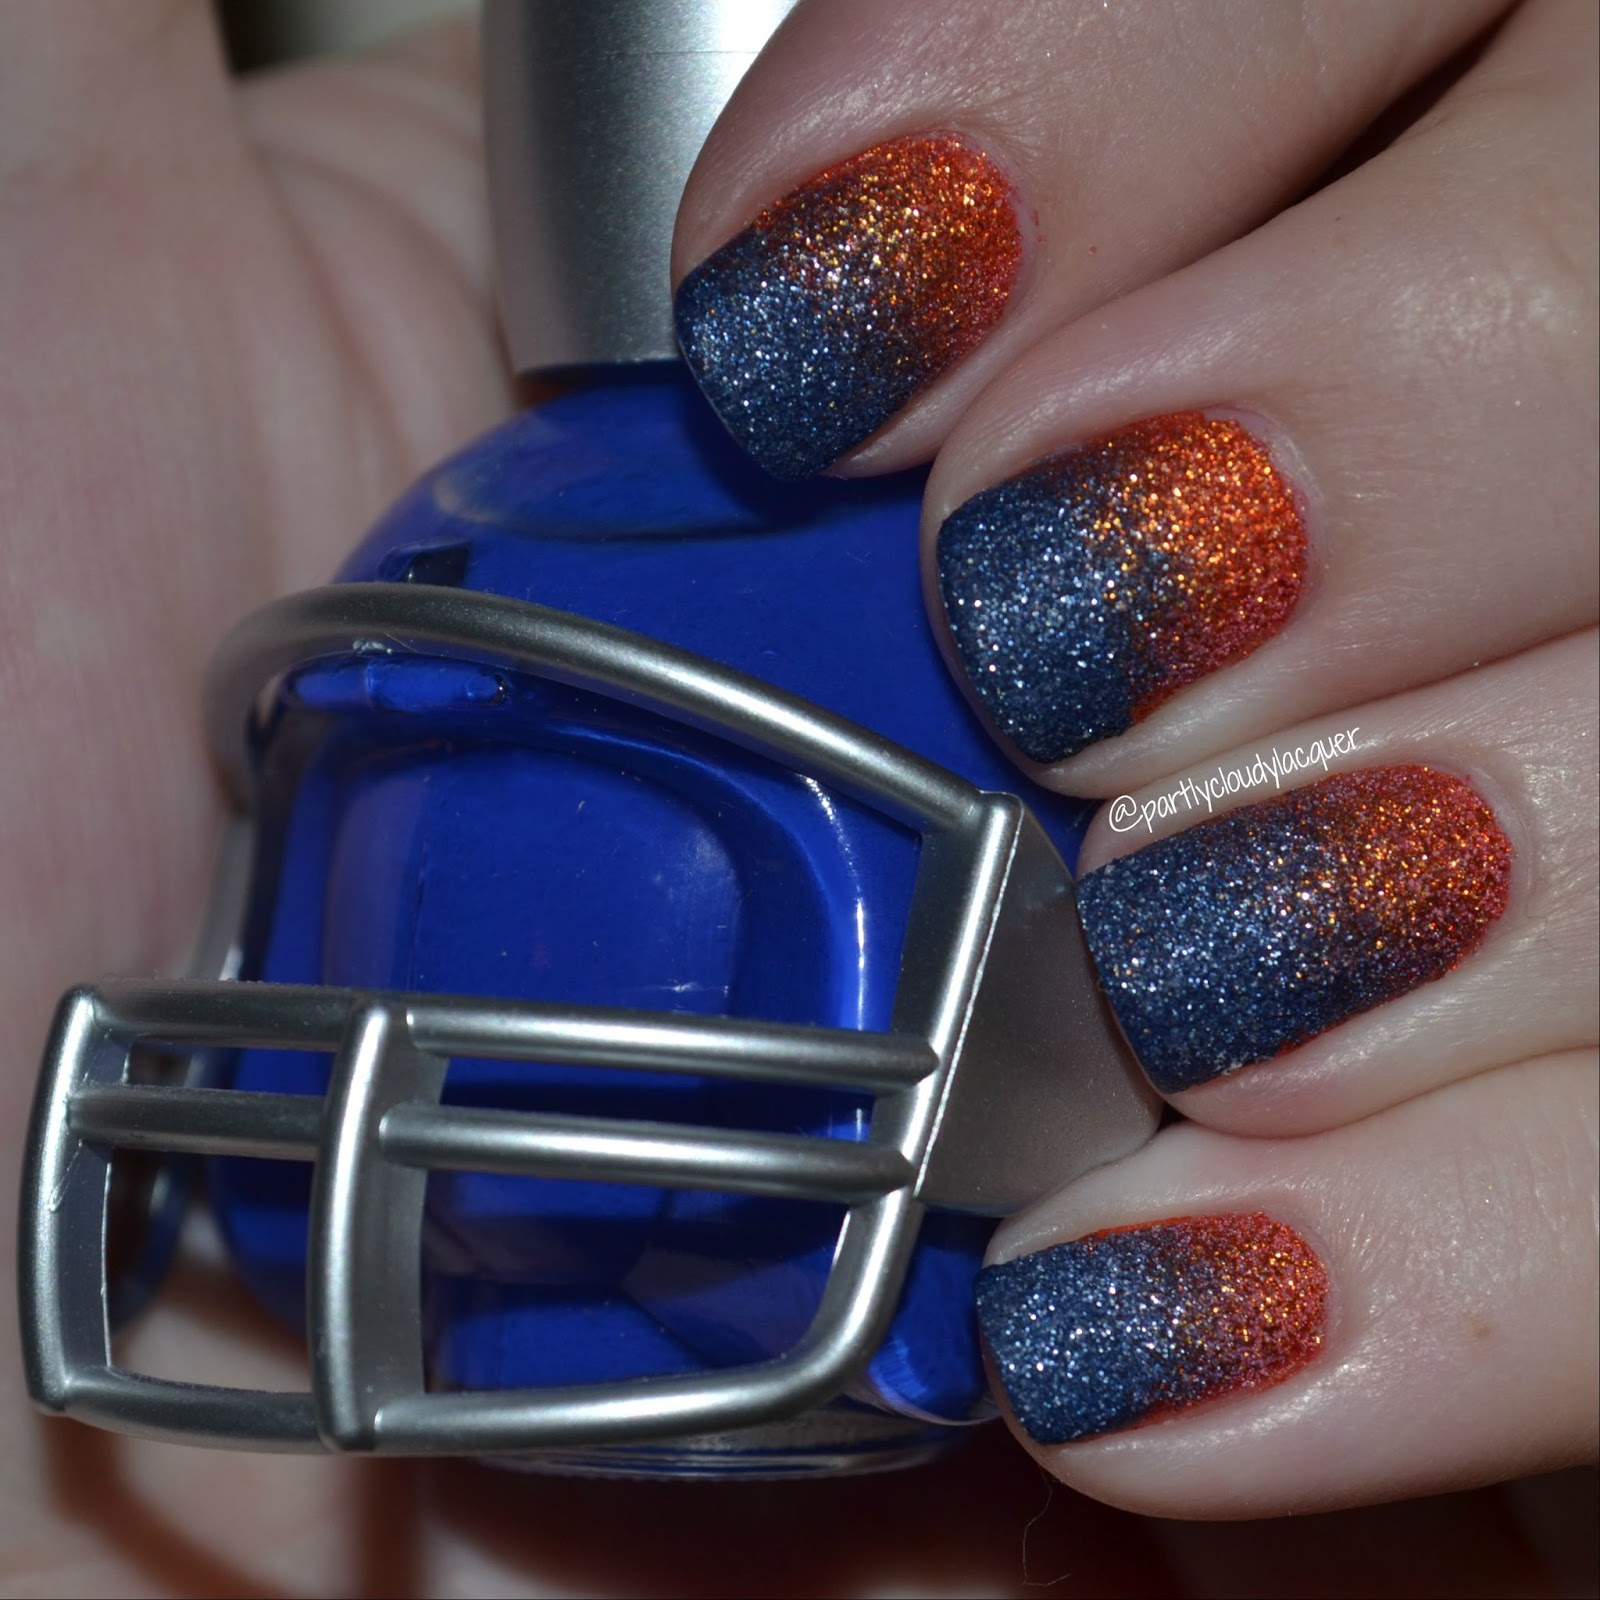 Florida Gator Nails 2015 Partly Cloudy With A Chance Of Lacquer